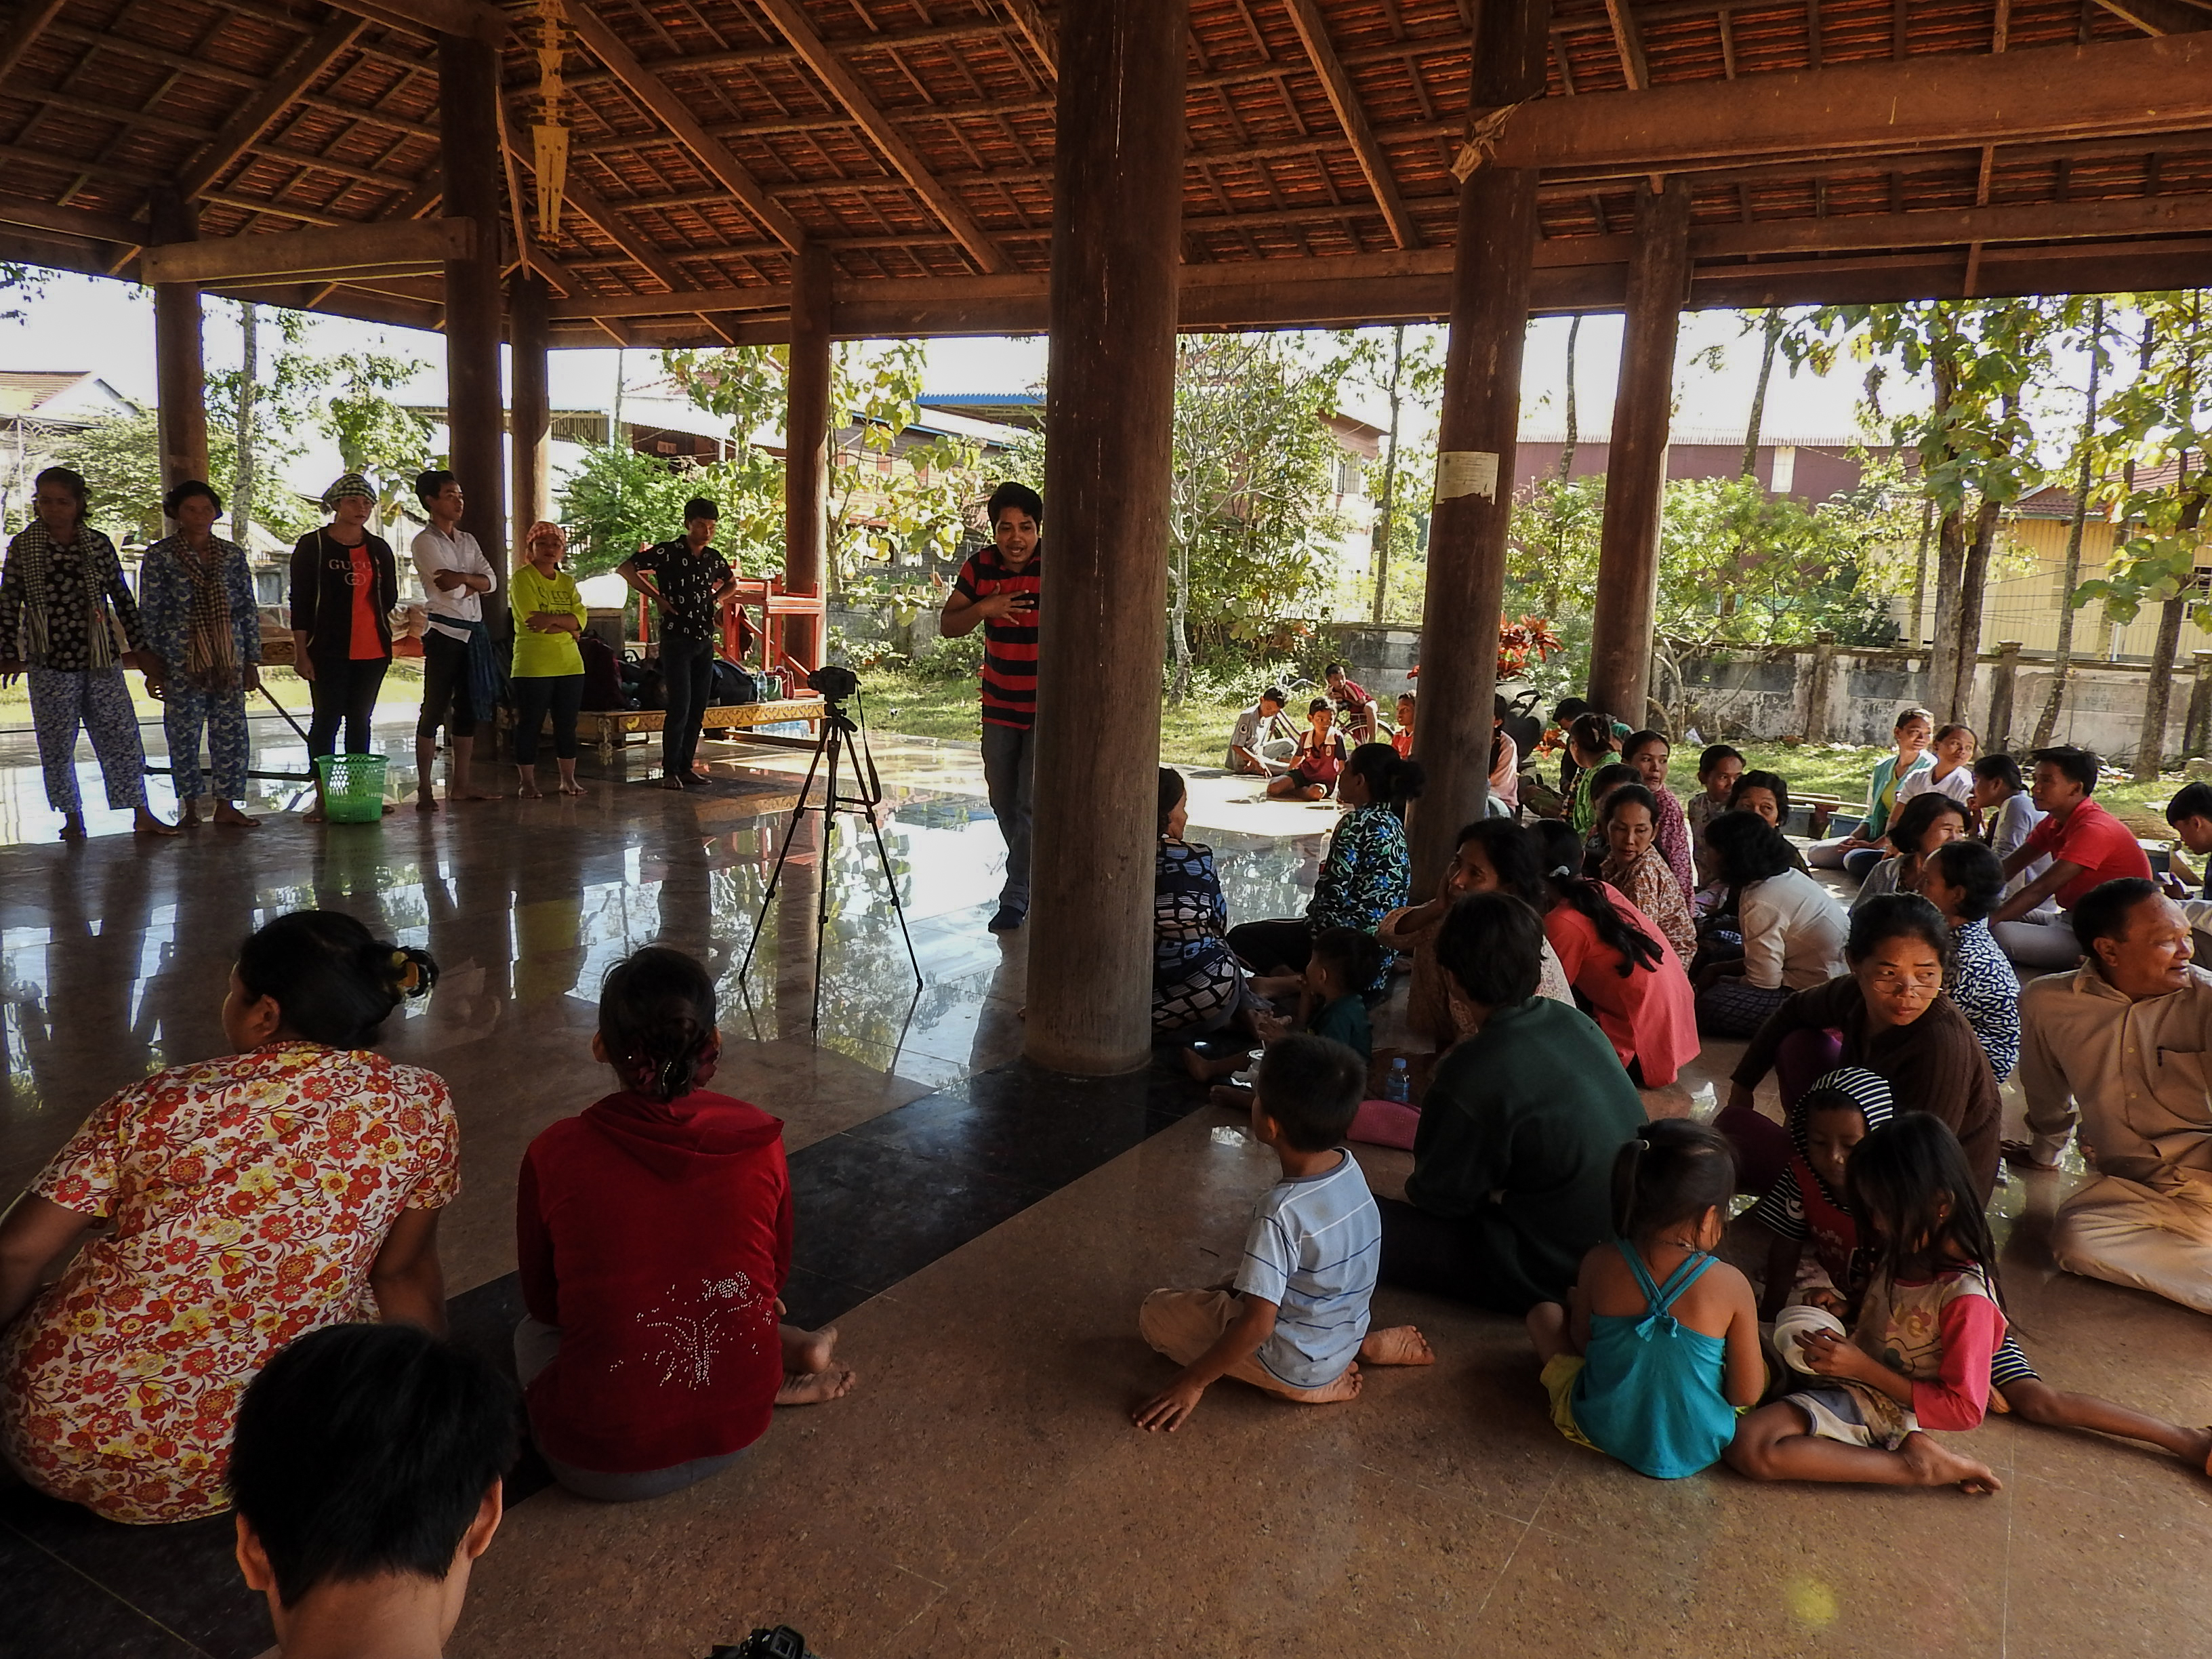 Jokers shared the forum theatre with community in Sambo district of Kratie province, Cambodia.